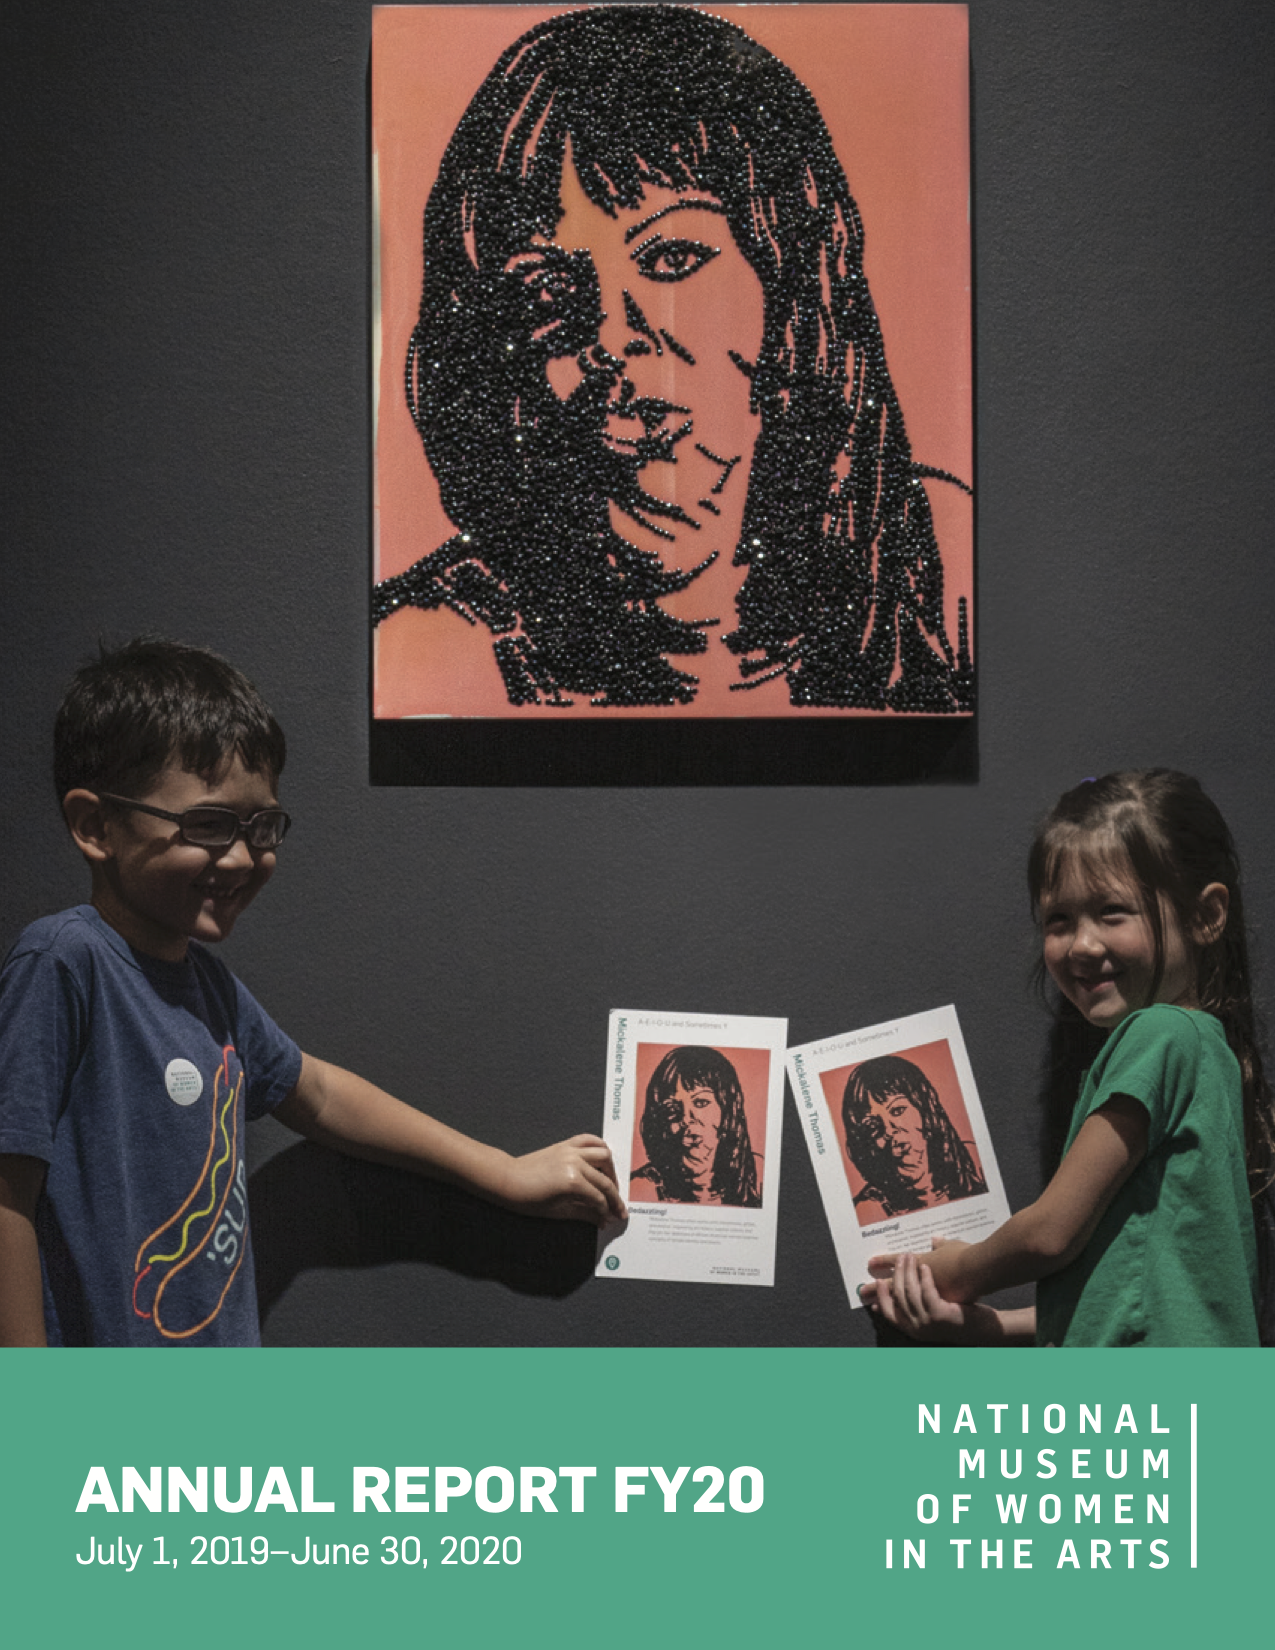 Annual report cover with an image of two children in the gallery holding up postcards with reproductions of the mixed media artwork hanging on the wall behind them.